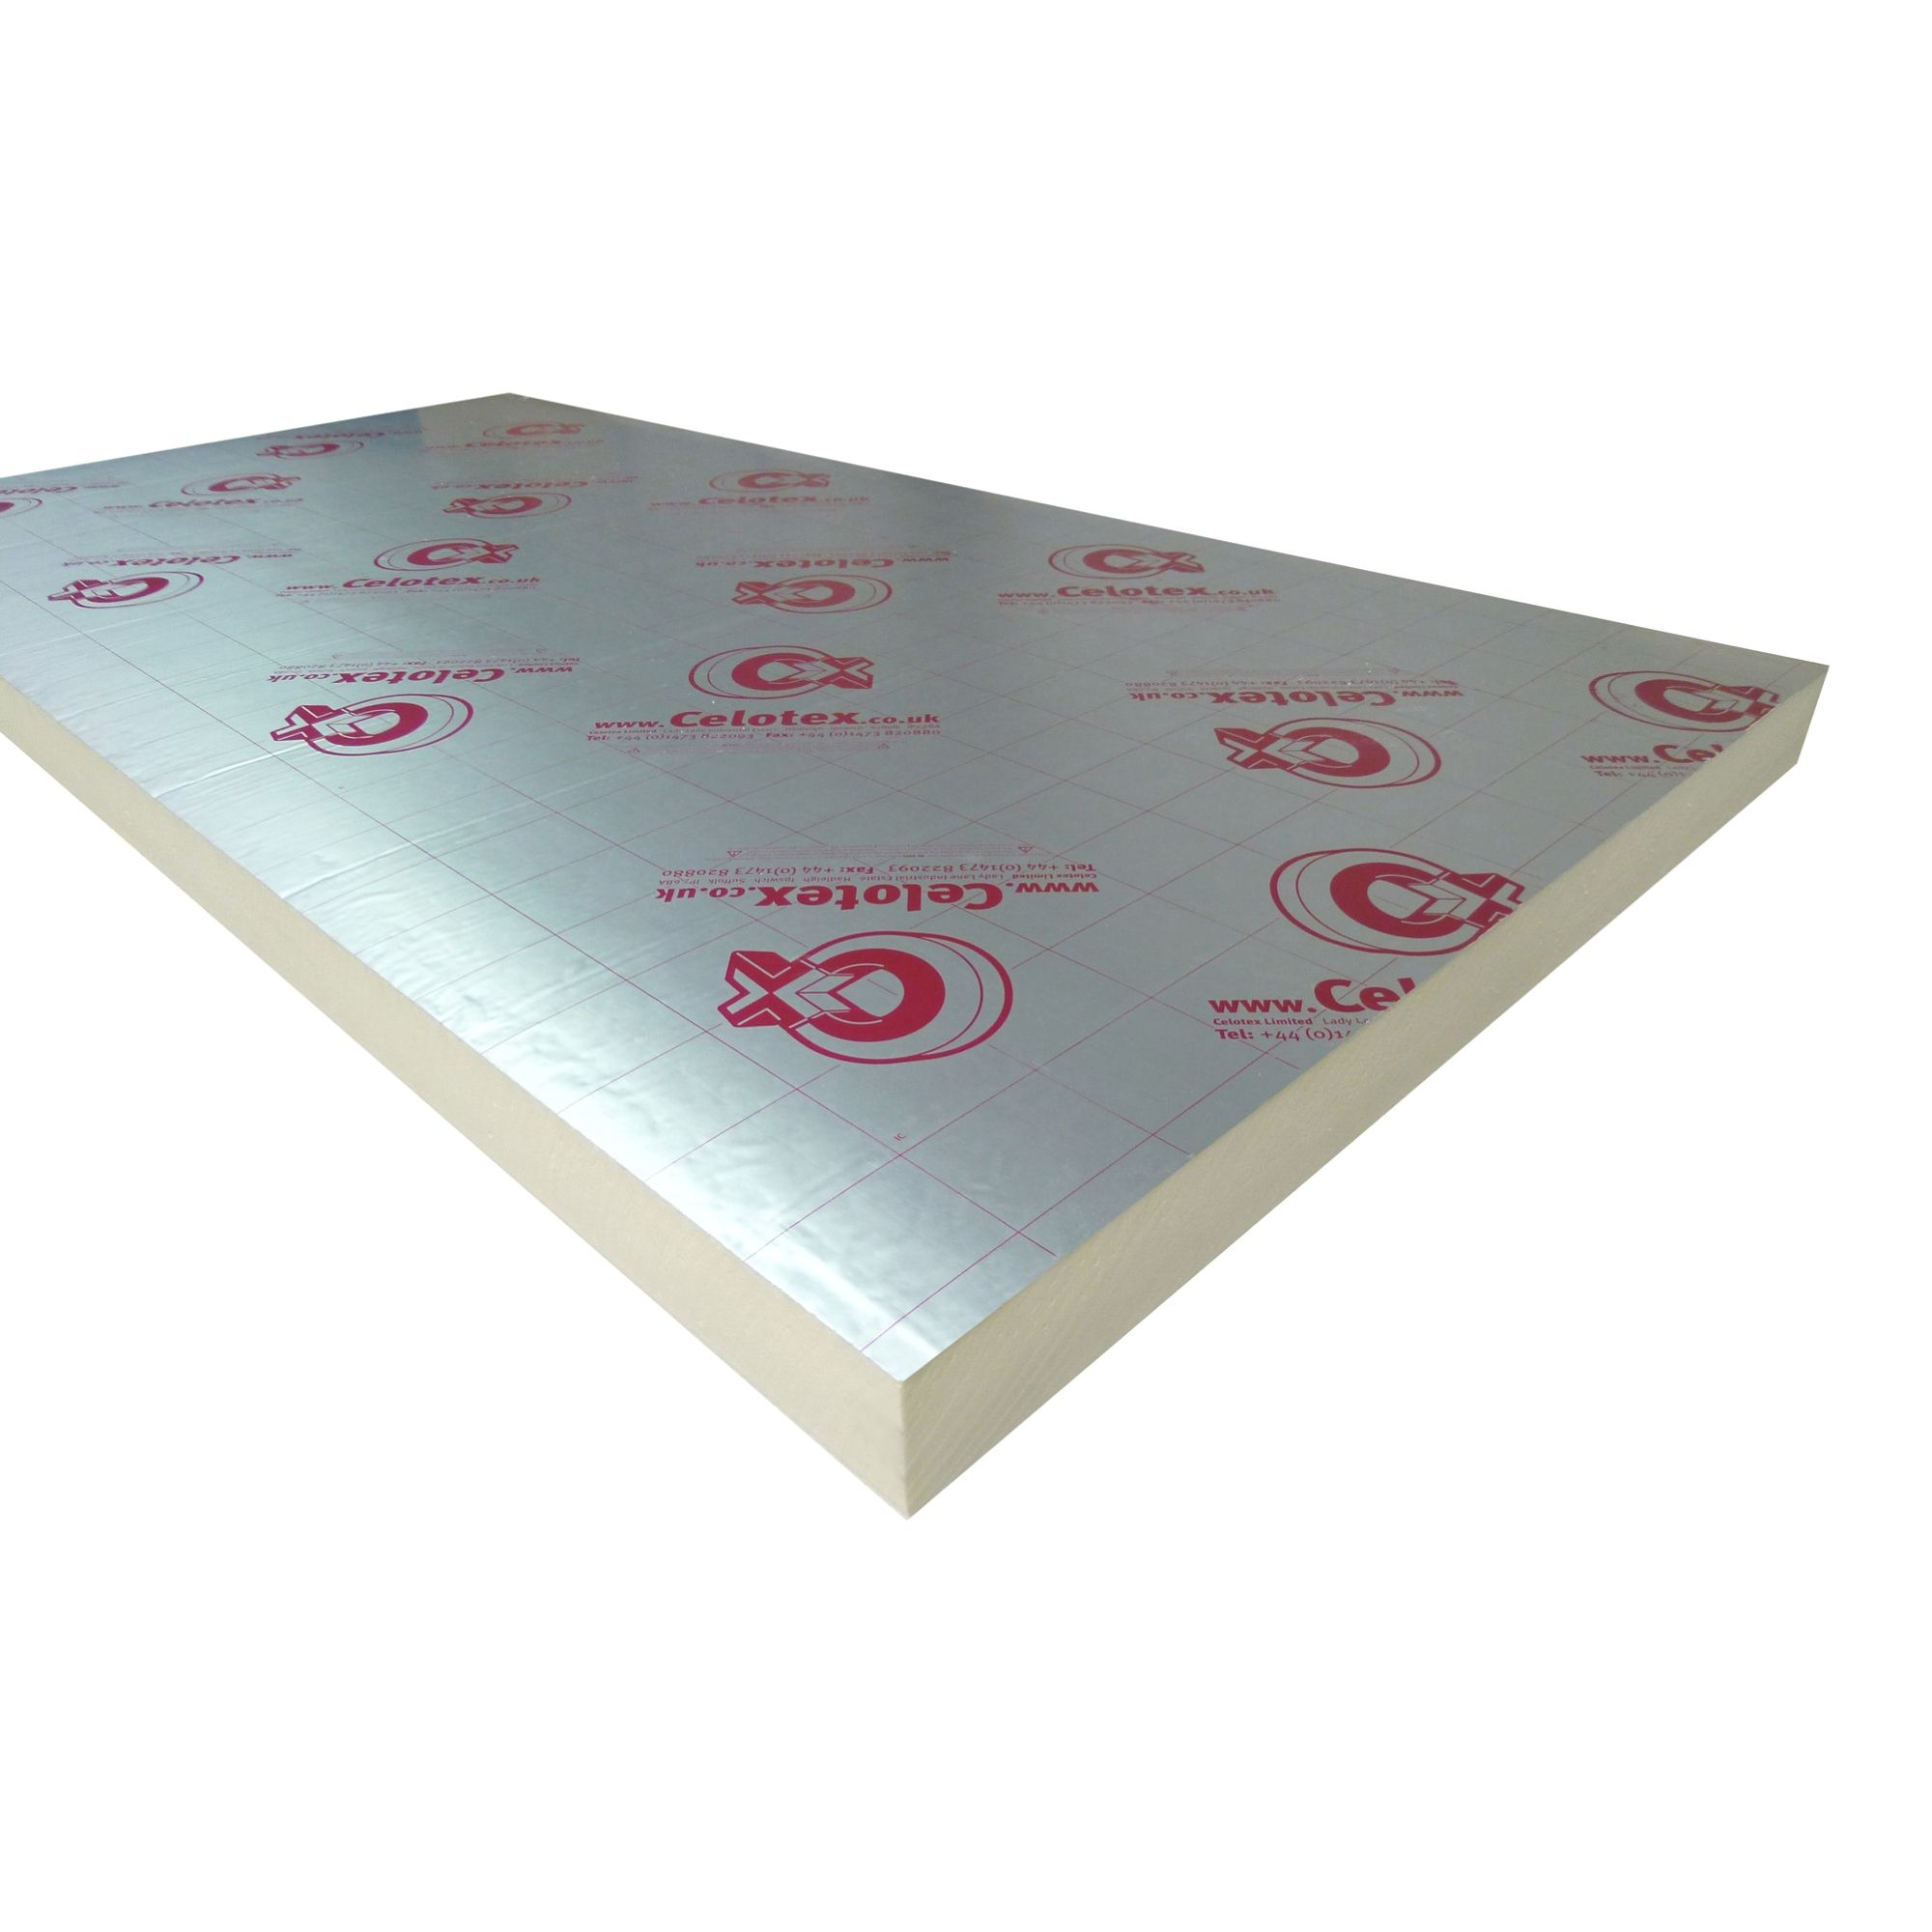 Celotex cw4000 insulation board 1200mm 450mm 50mm for Stone wall insulation